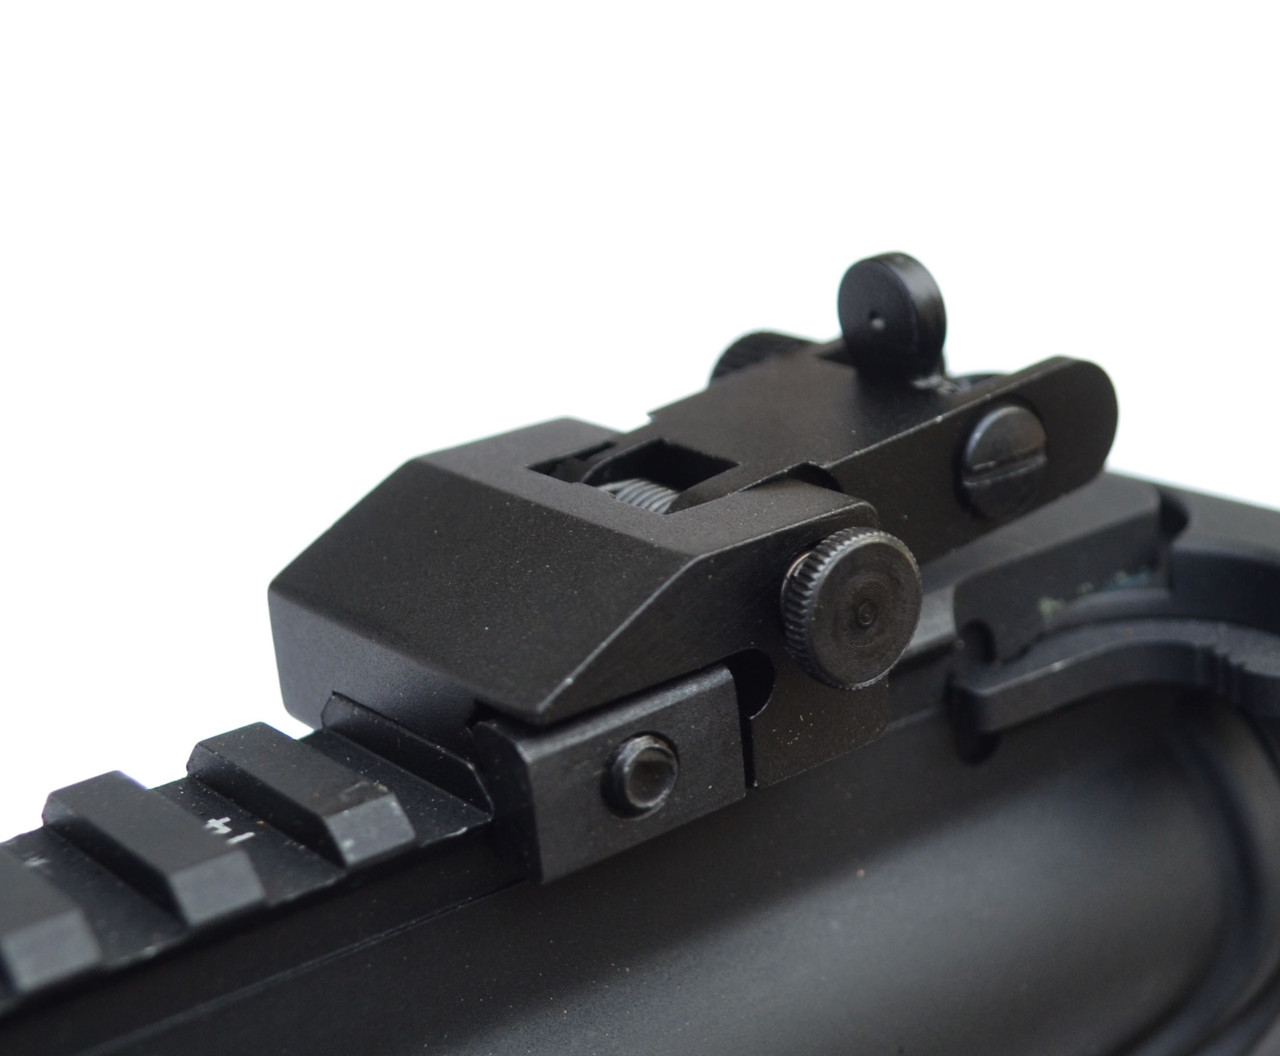 Details about  /Front Rear Gun Sight Iron Flip Up Backup Picatinny Rifle Spring Load Weaver Rail